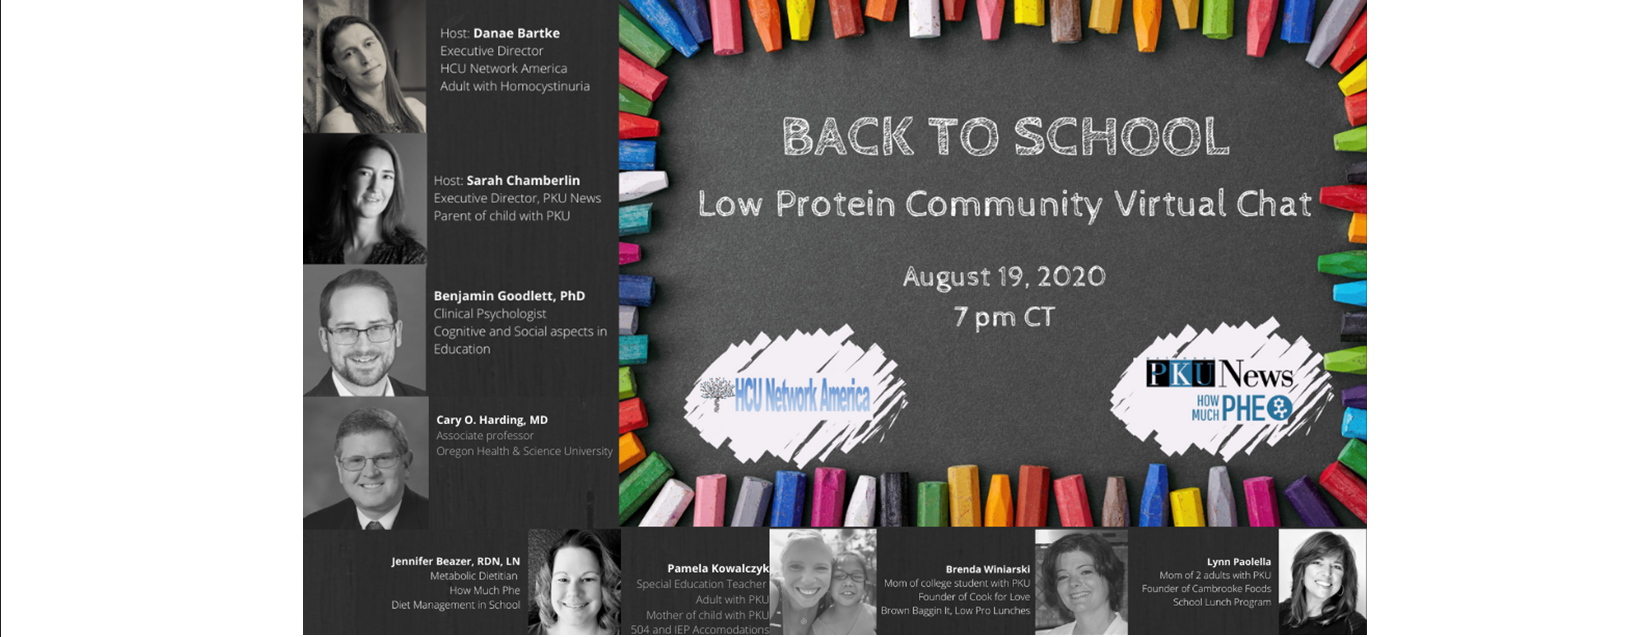 Low Protein Community Virtual Chat